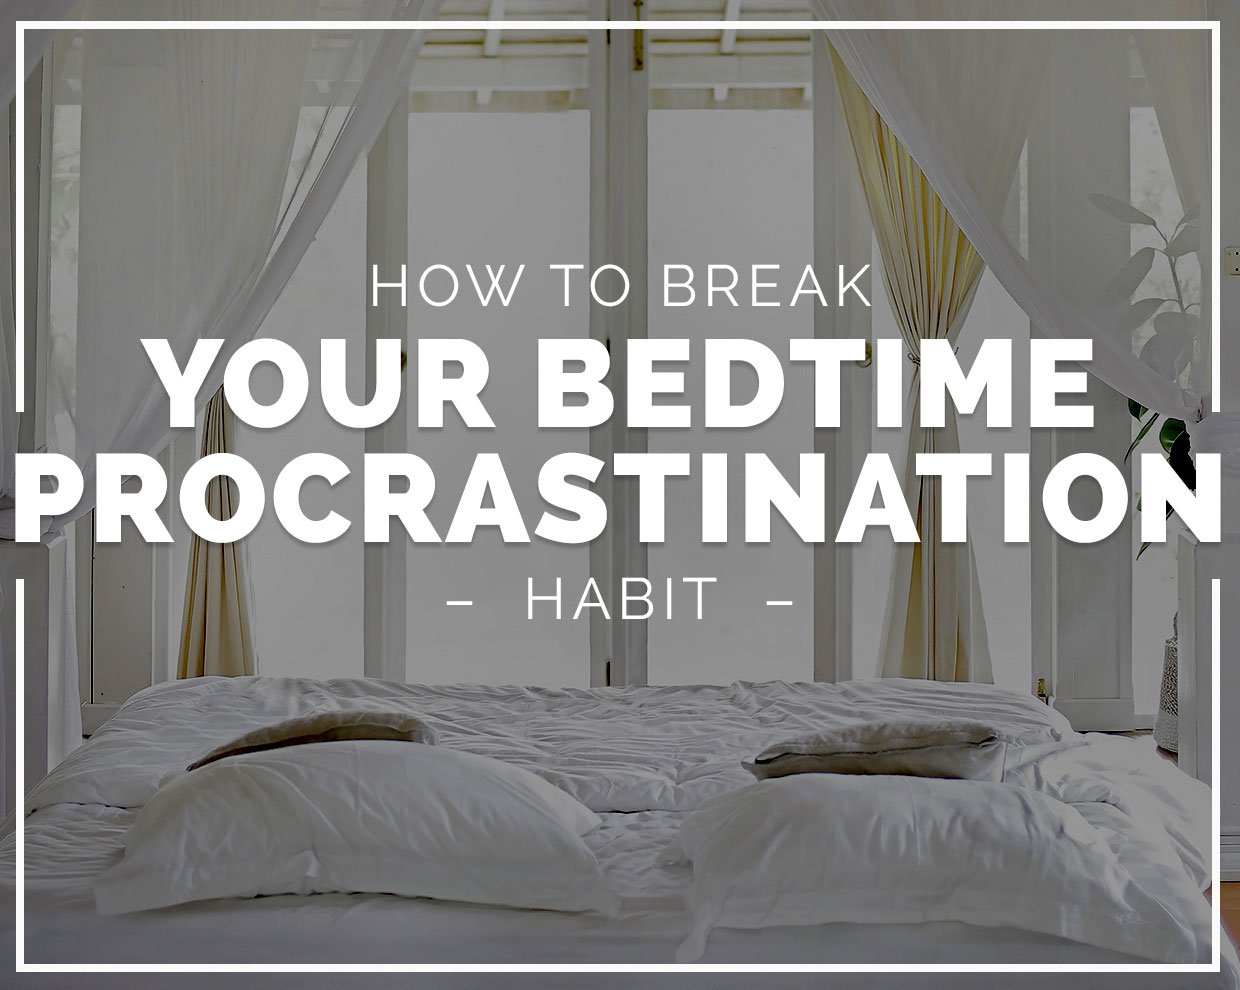 How to break your bedtime procrastination habit